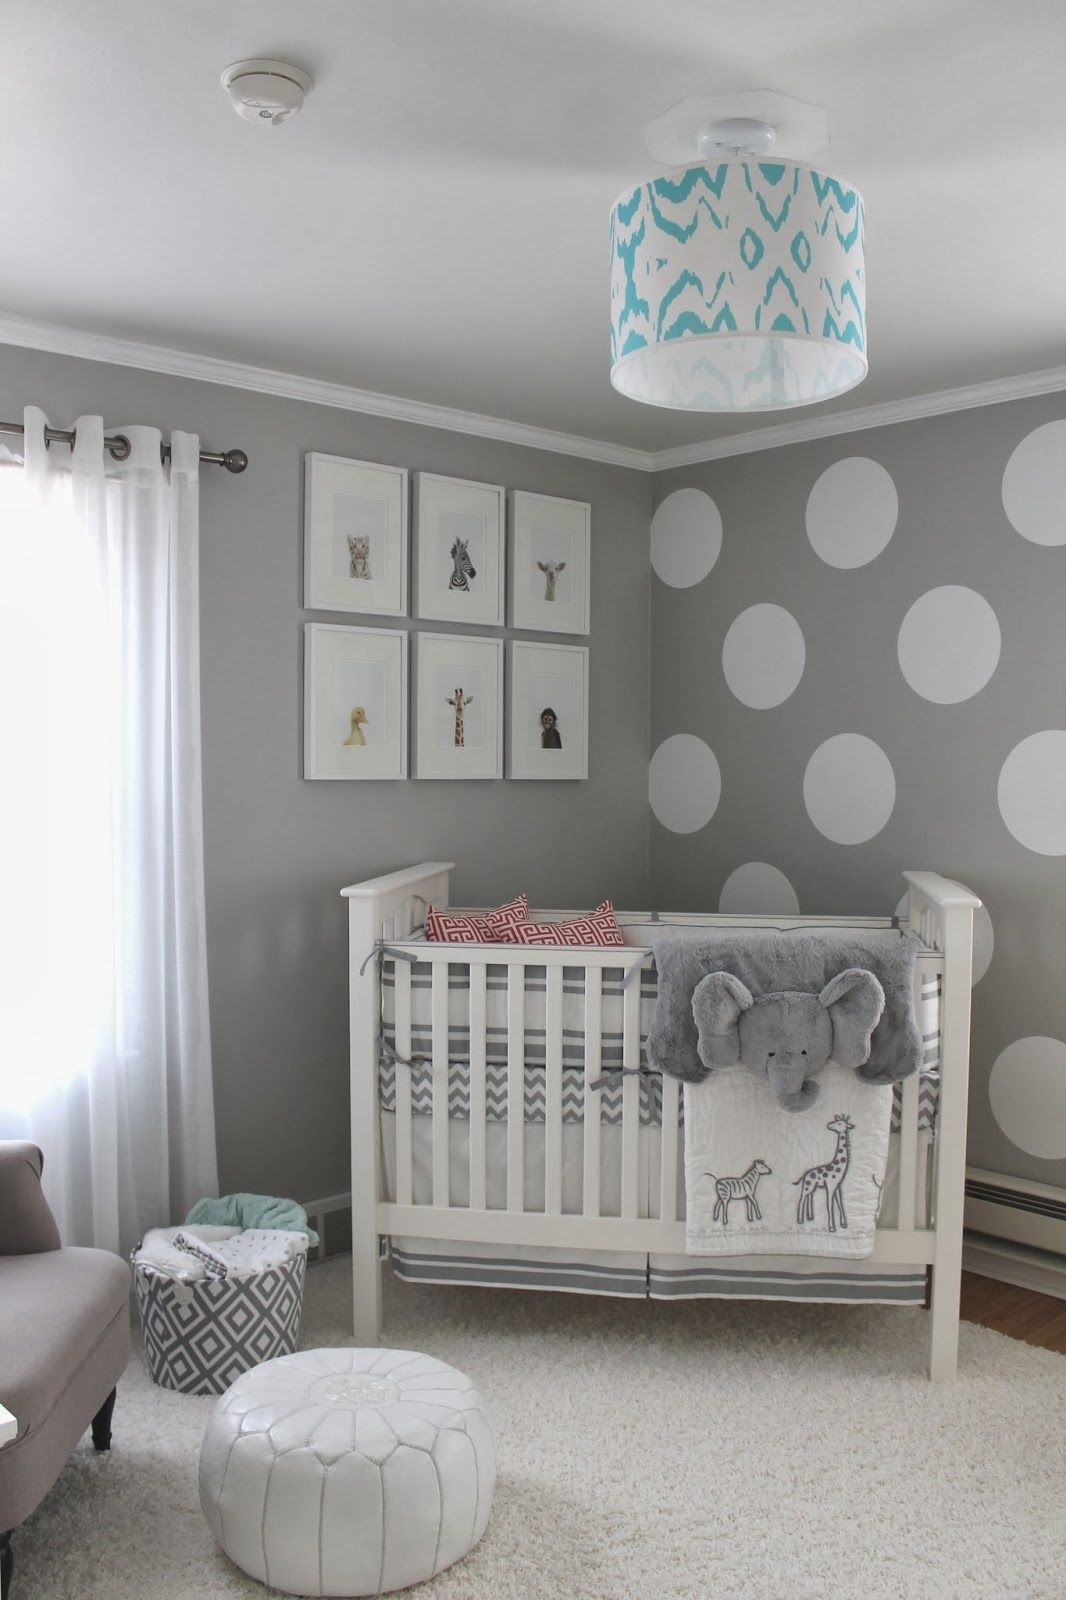 Gray baby room pictures photos and images for facebook for Baby rooms decoration